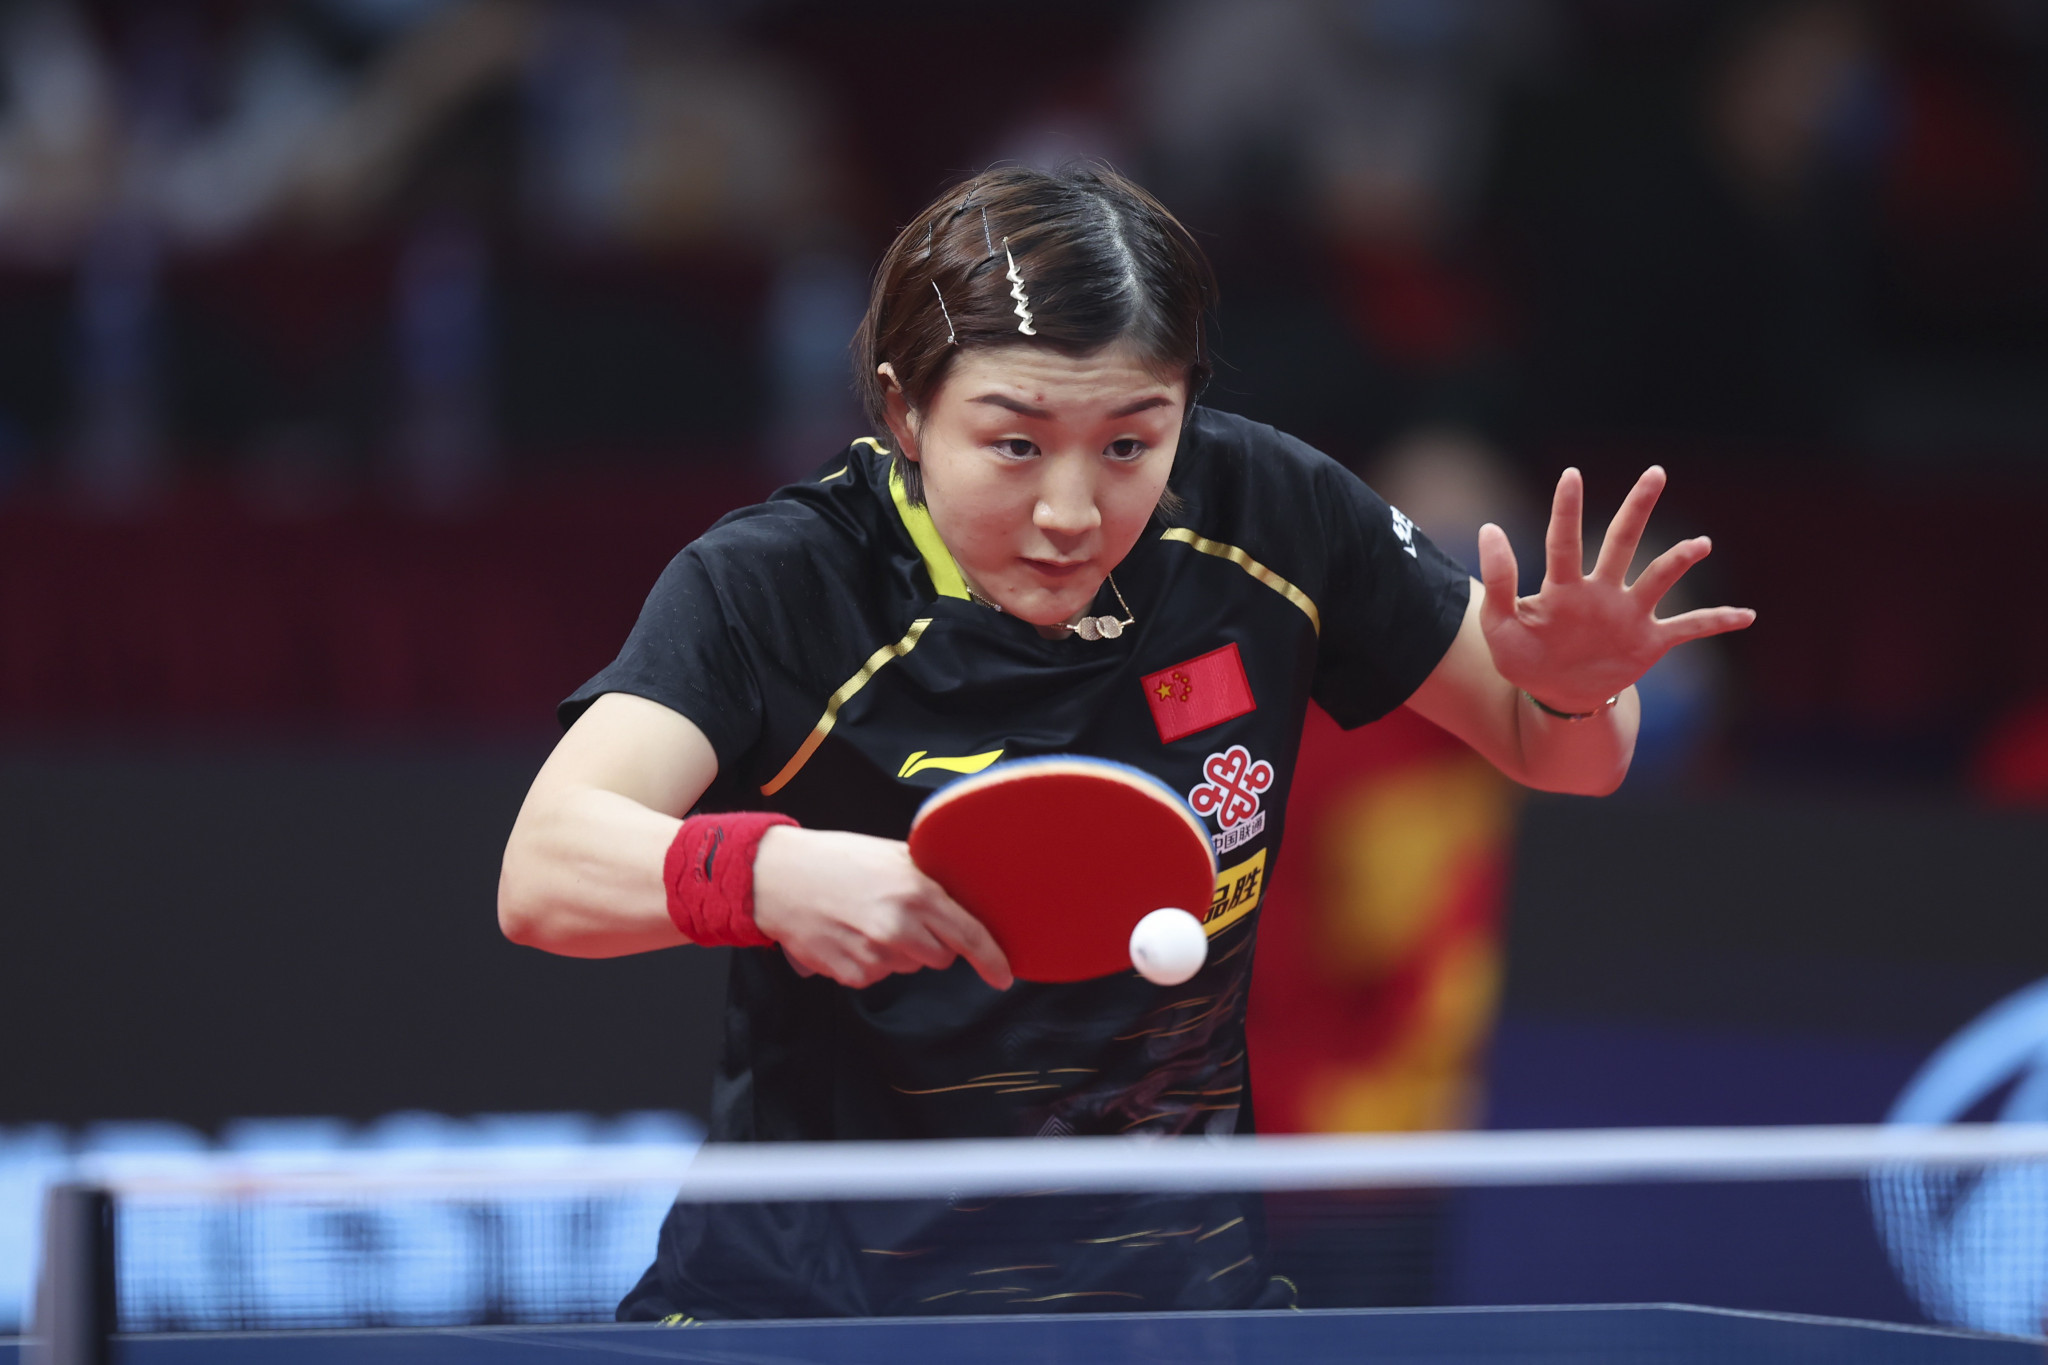 The ITTF ended its eight-month competition hiatus in 2020 with the Women's World Cup in November ©Getty Images